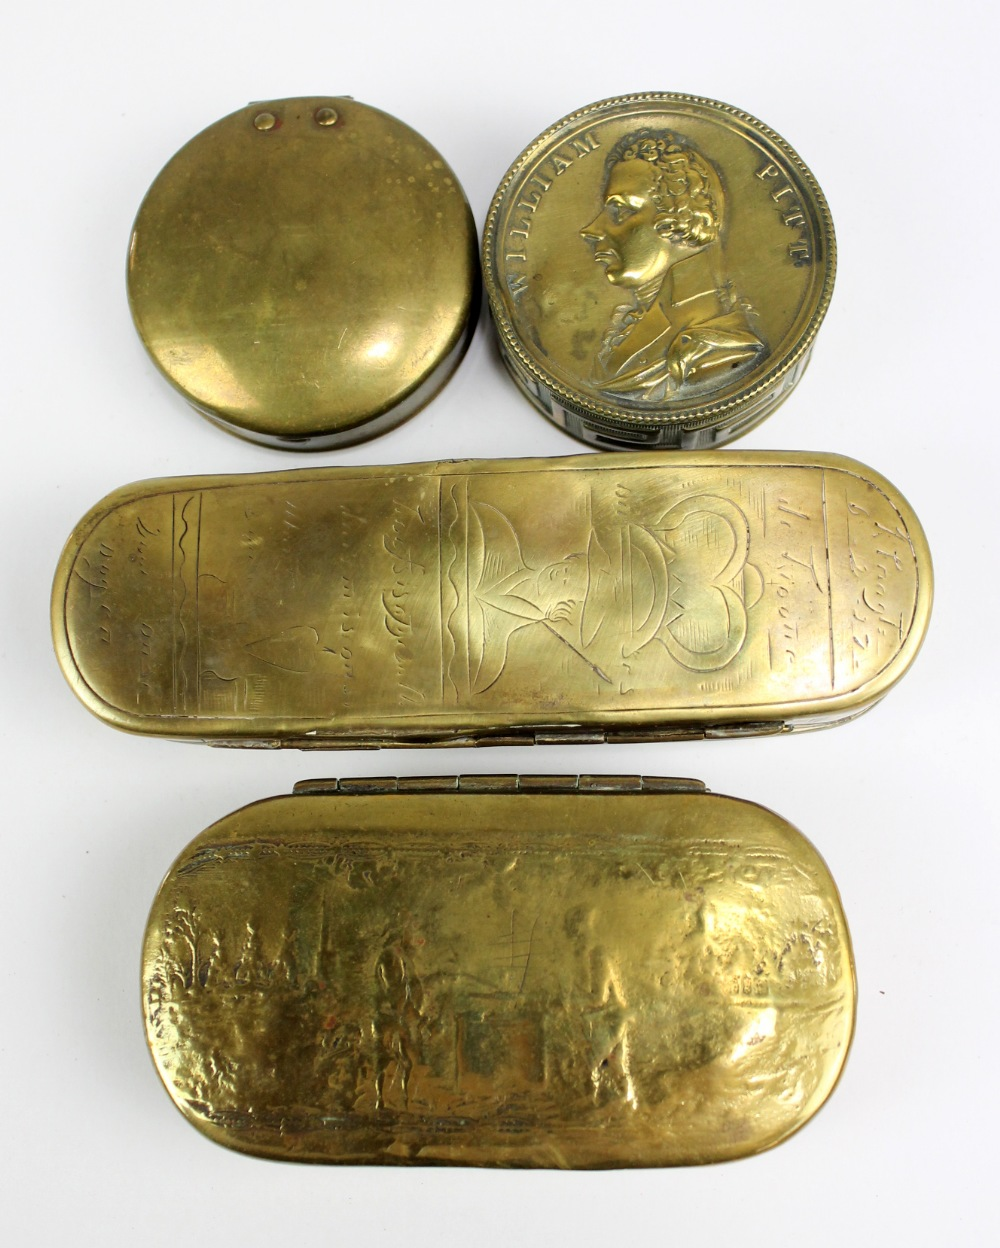 Lot 16 - Two 18th century Dutch brass tobacco boxes, both with heavily rubbed decoration, a circular